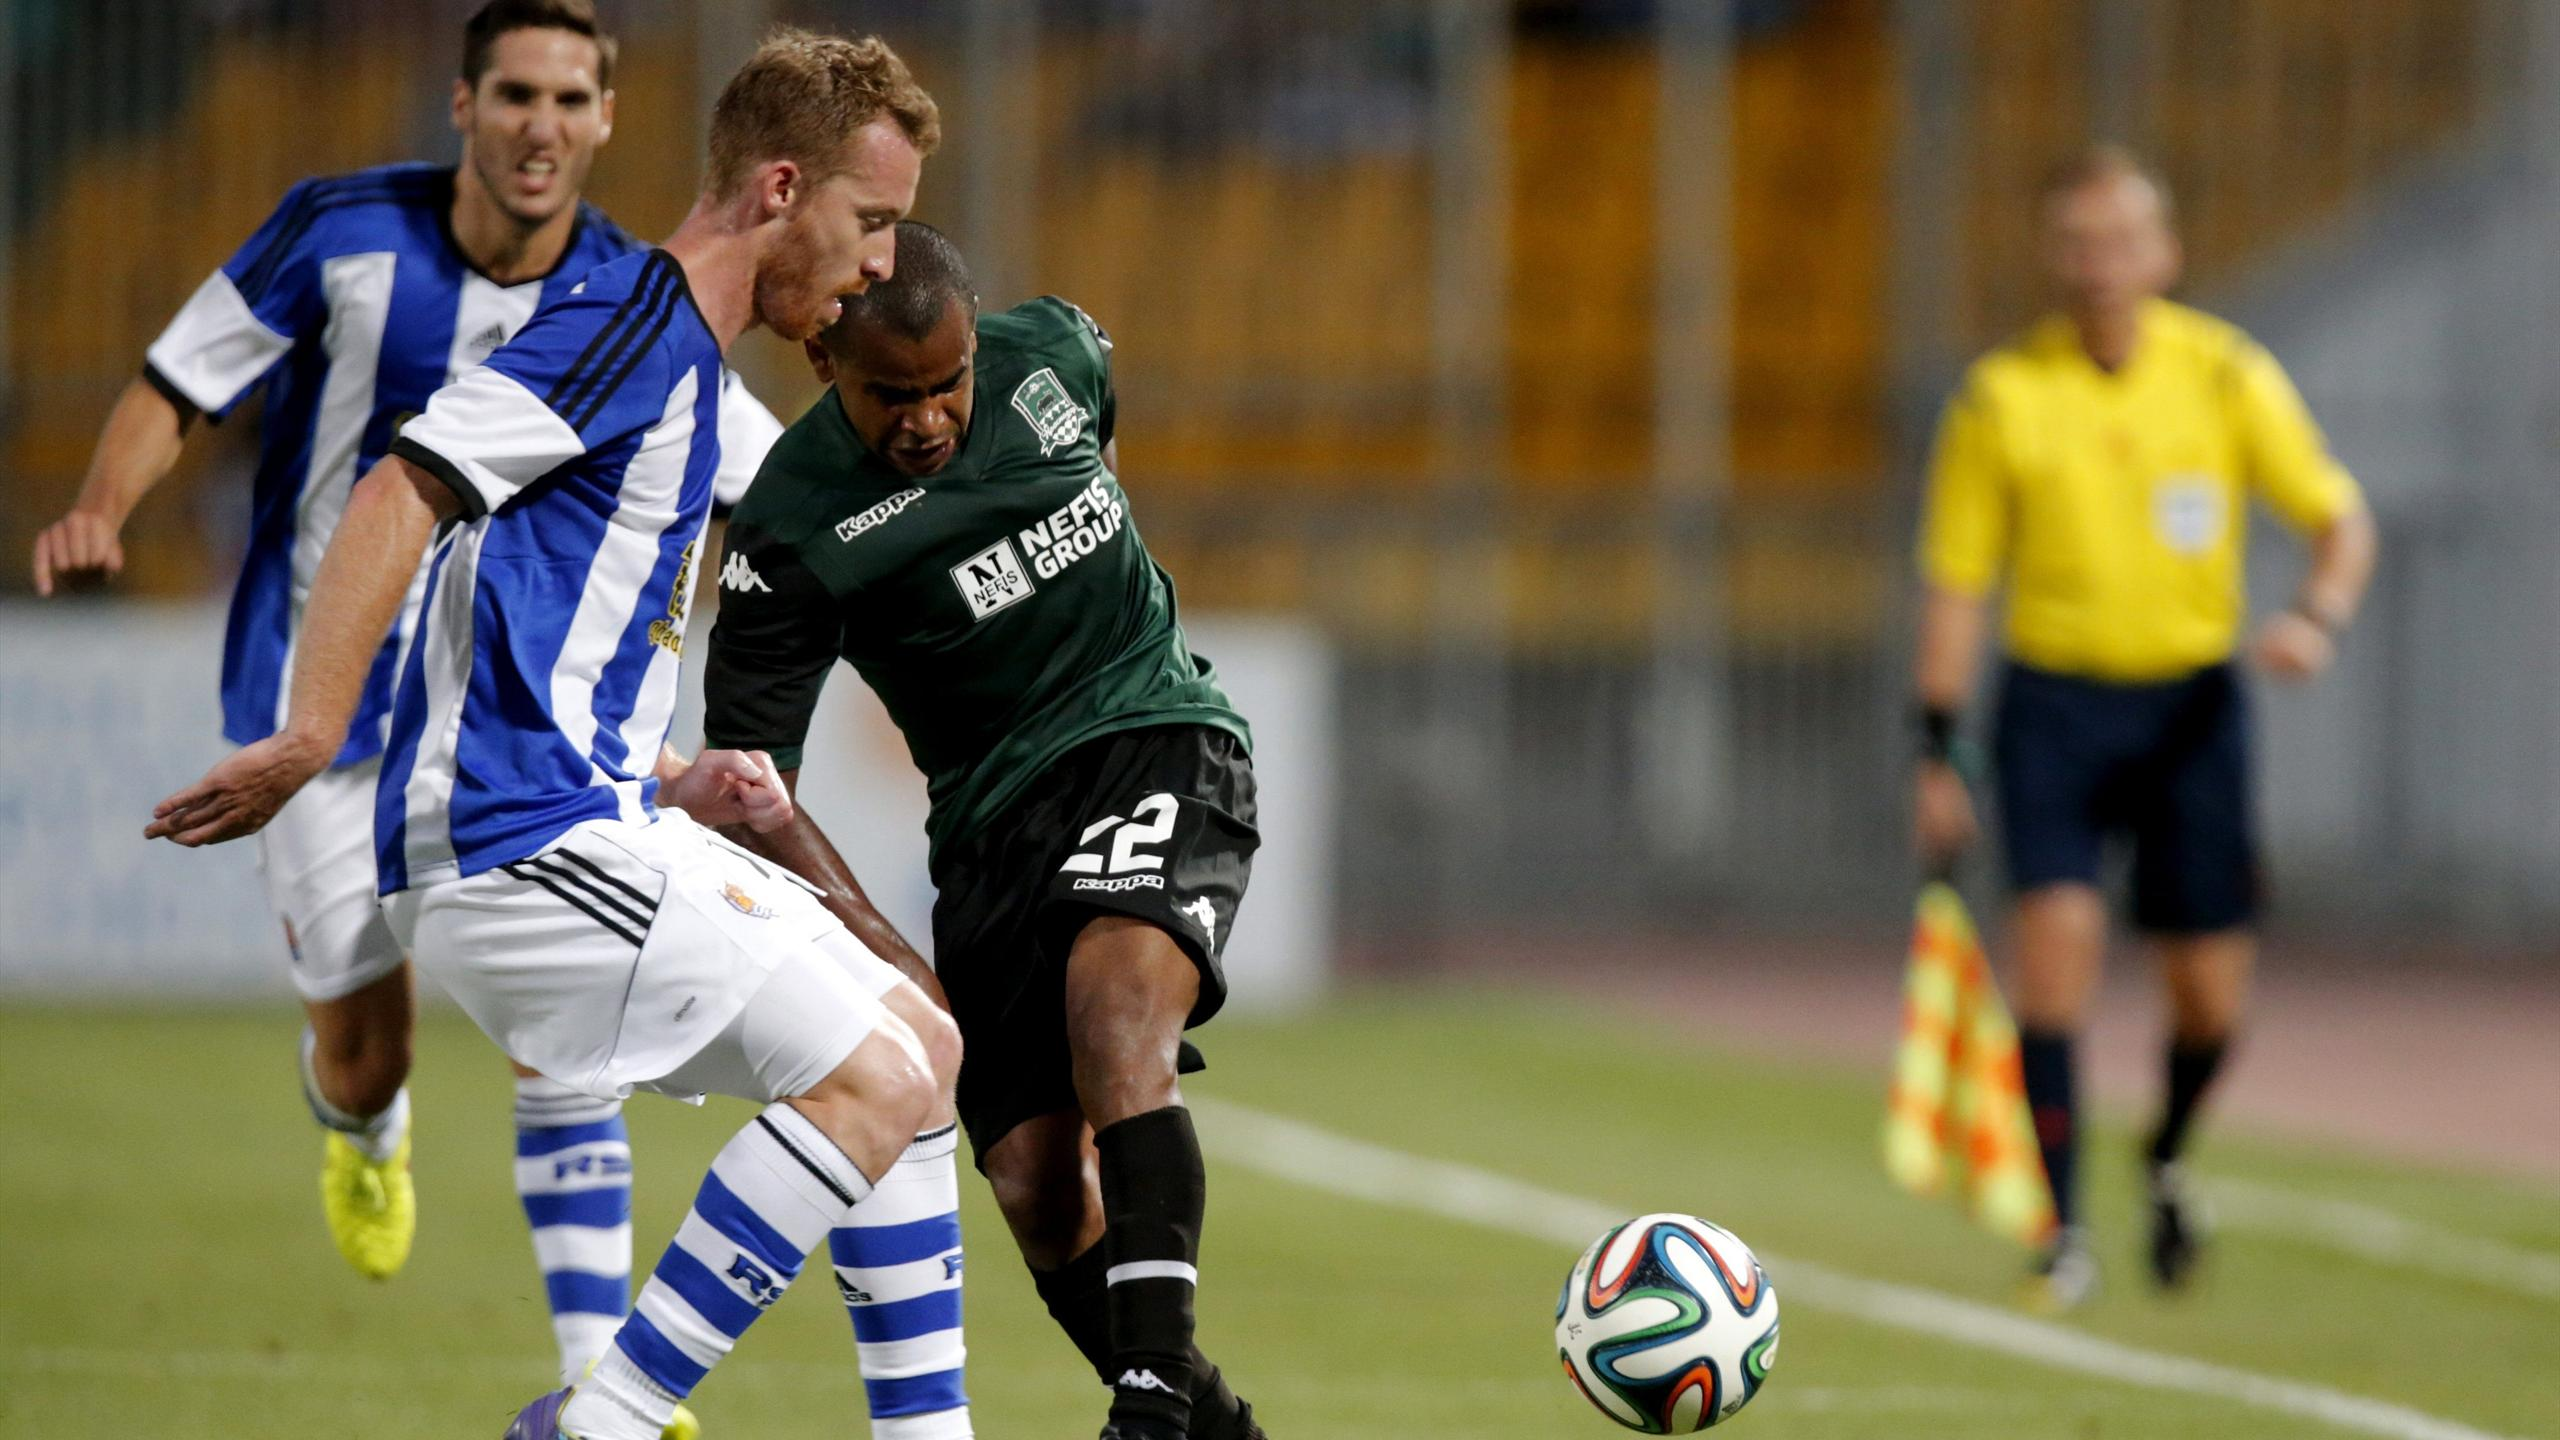 Video: Krasnodar vs Real Sociedad